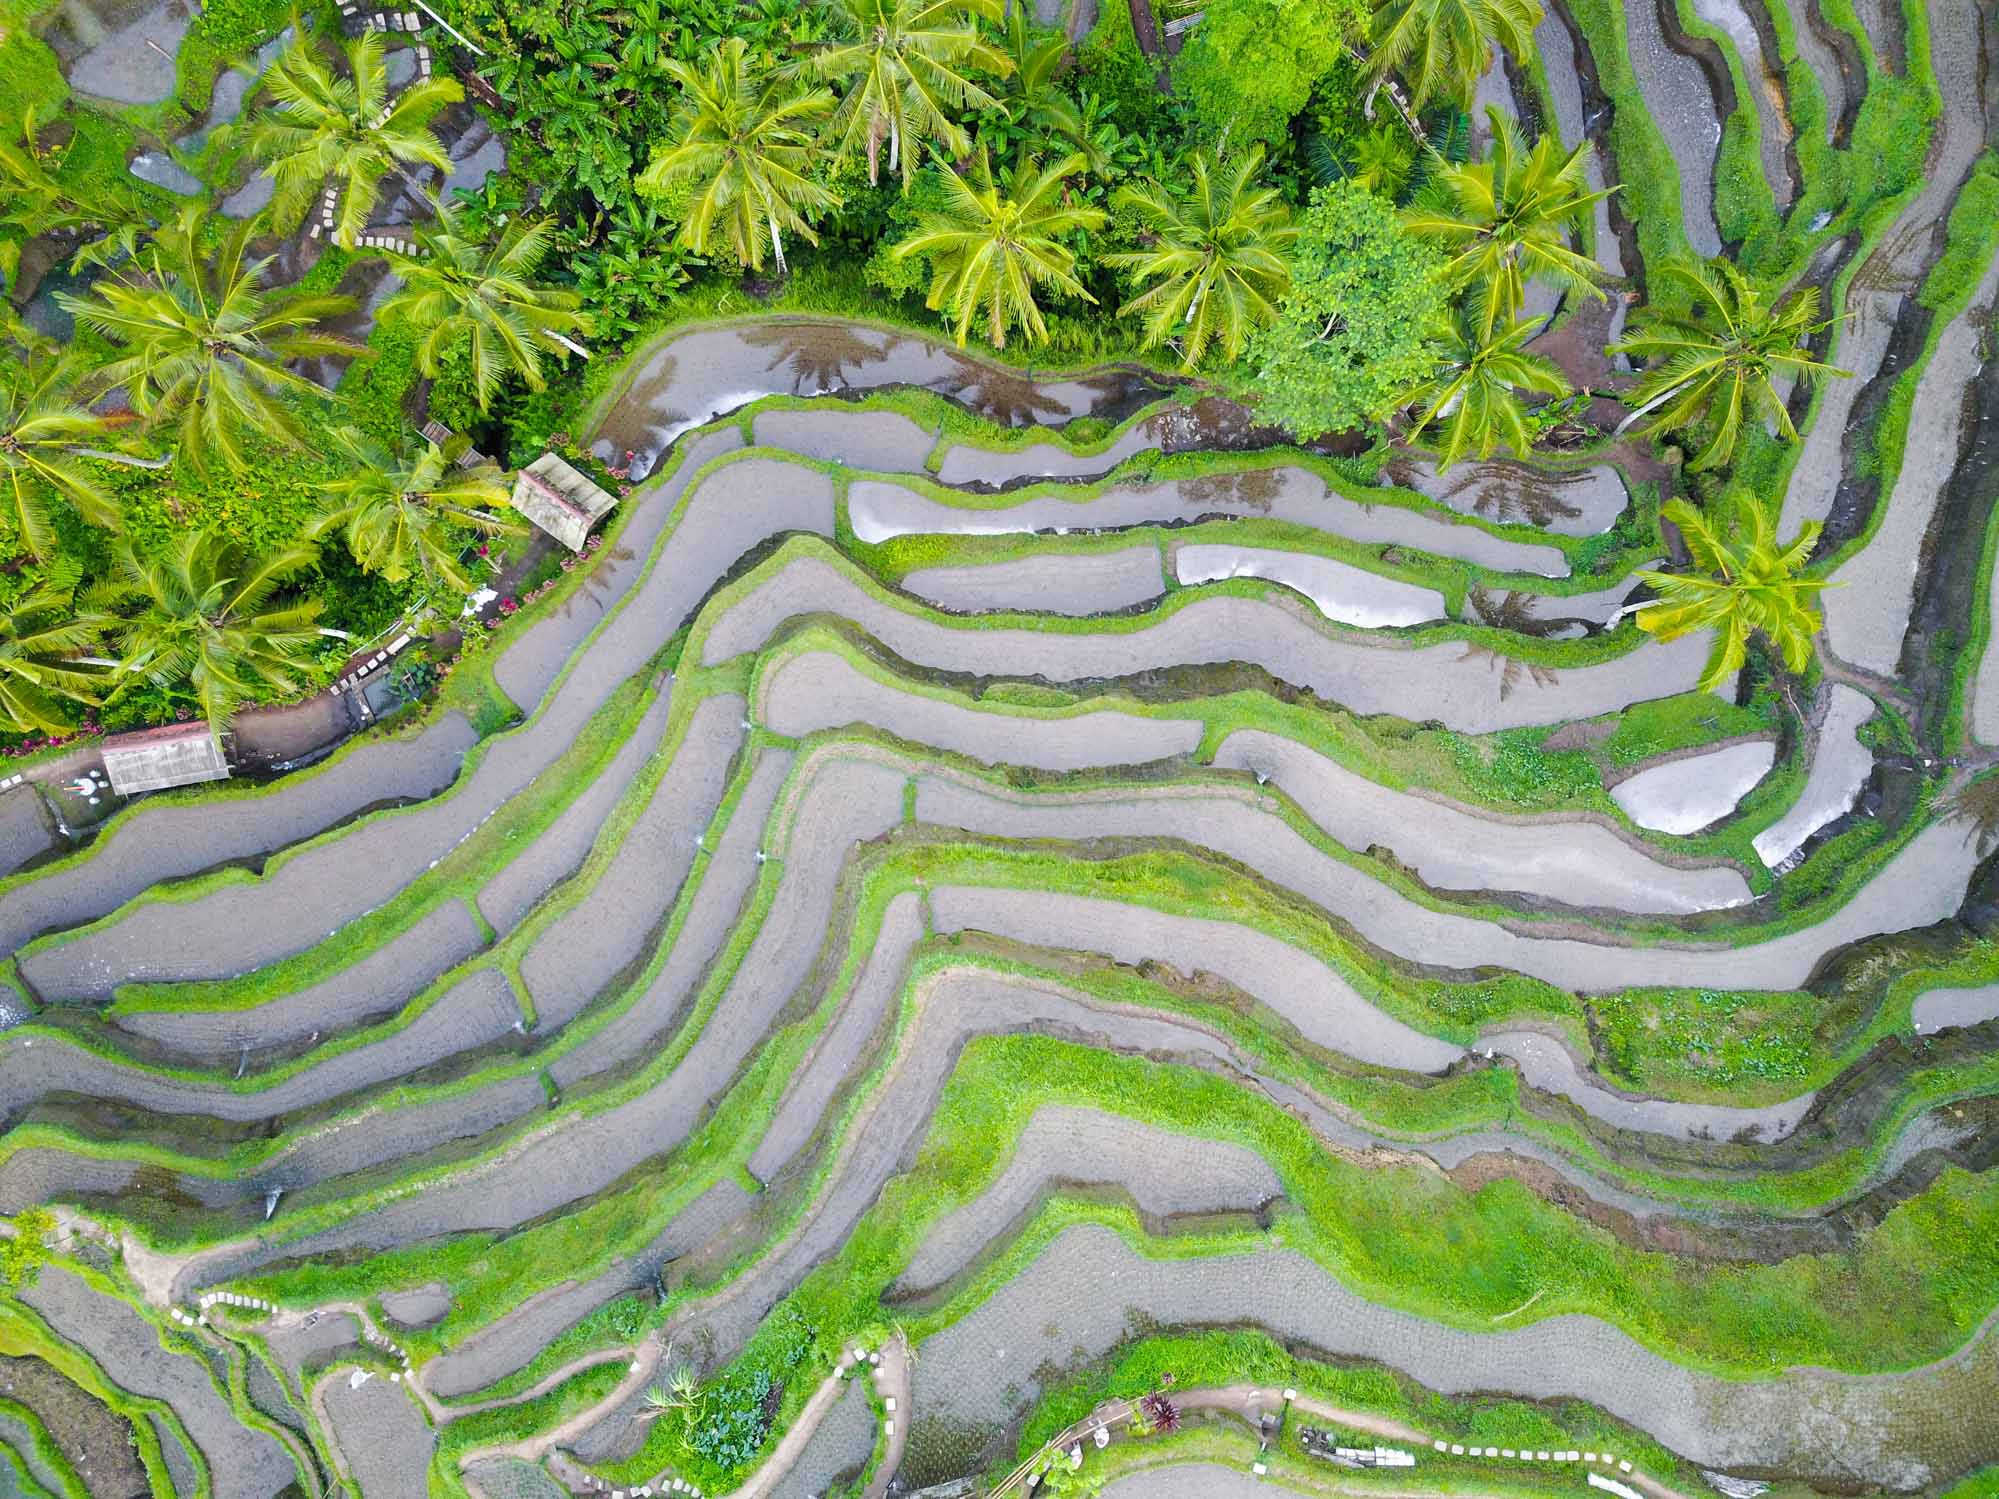 Bali Rice Terraces – The 10 Best Spots On The Island You Need To Visit